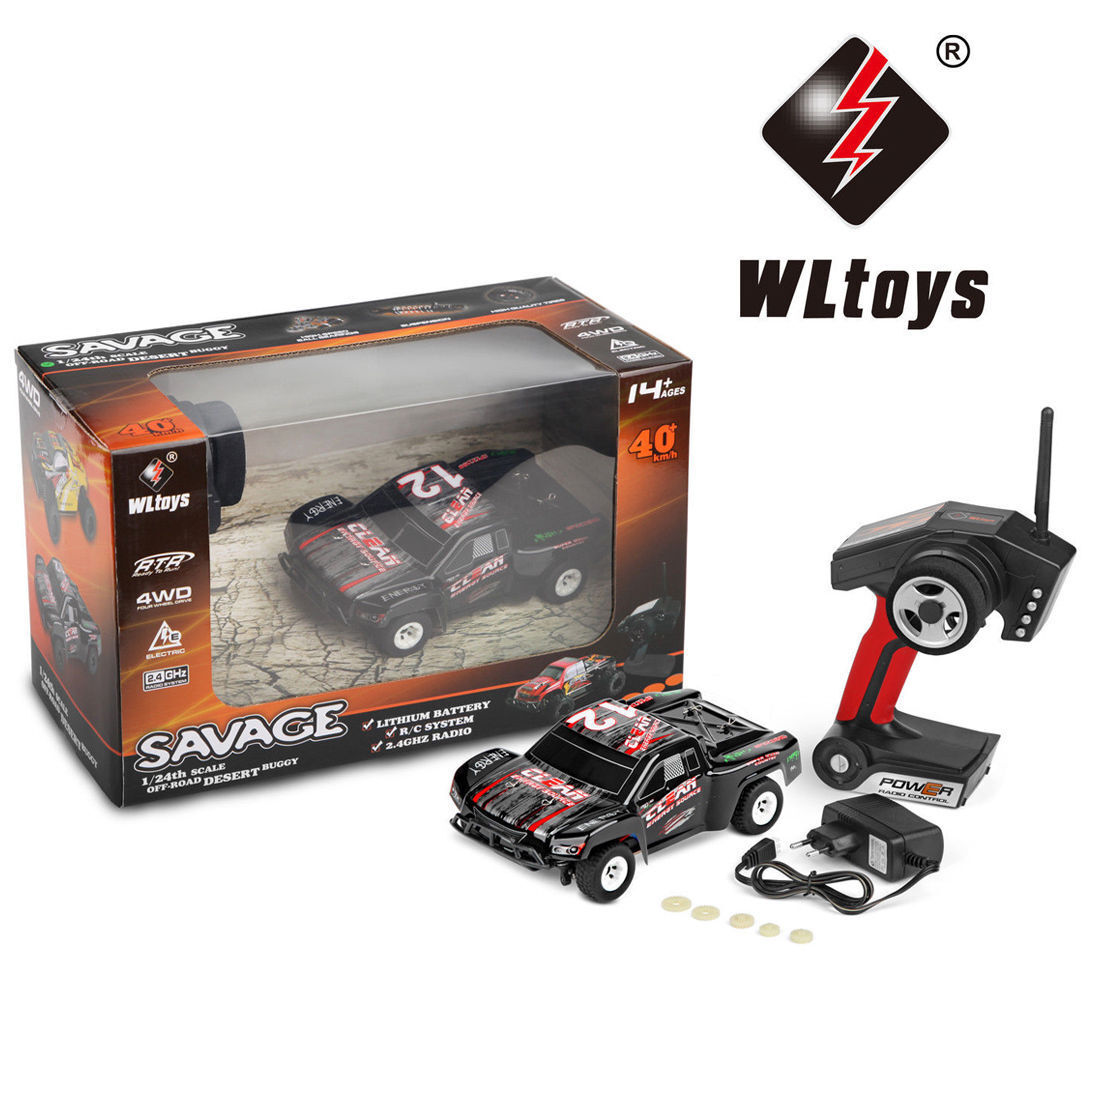 Wltoys WL Toys A232 2.4G 4WD 35KM/H 1/24 RC Radio Control Car US Seller